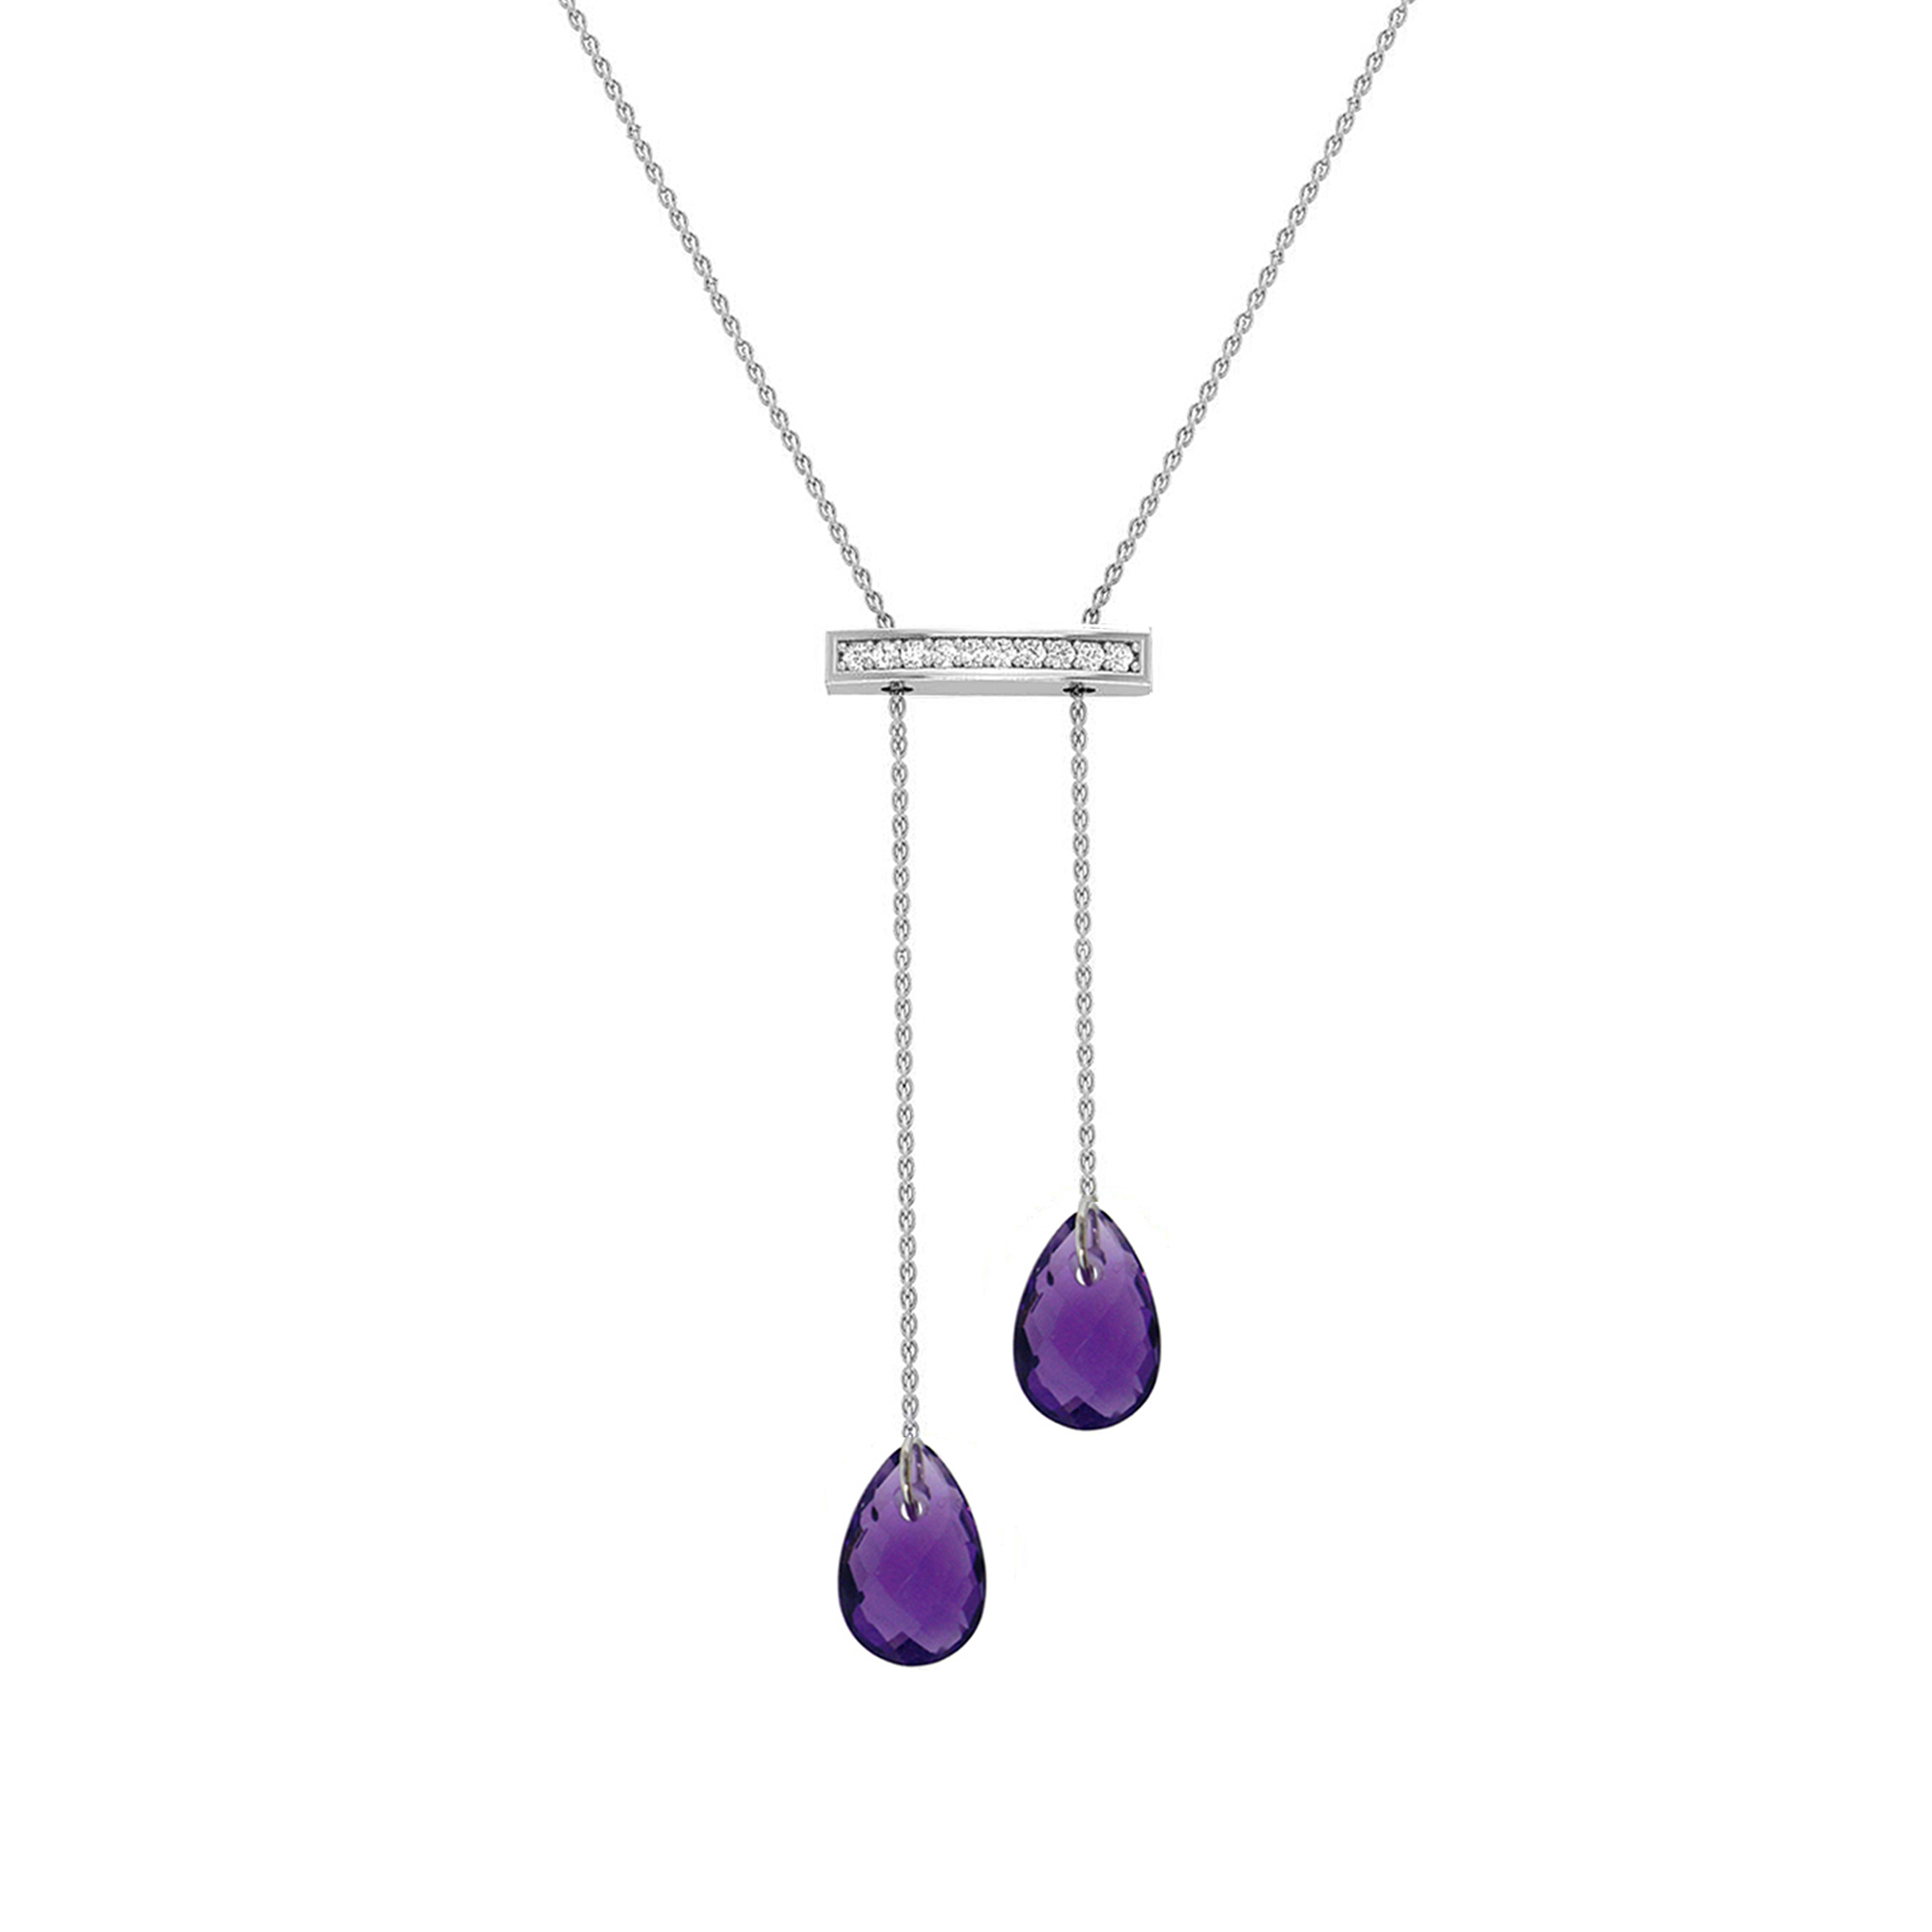 10K Amethyst and diamond pendant on gold filled wamethyst beaded chain